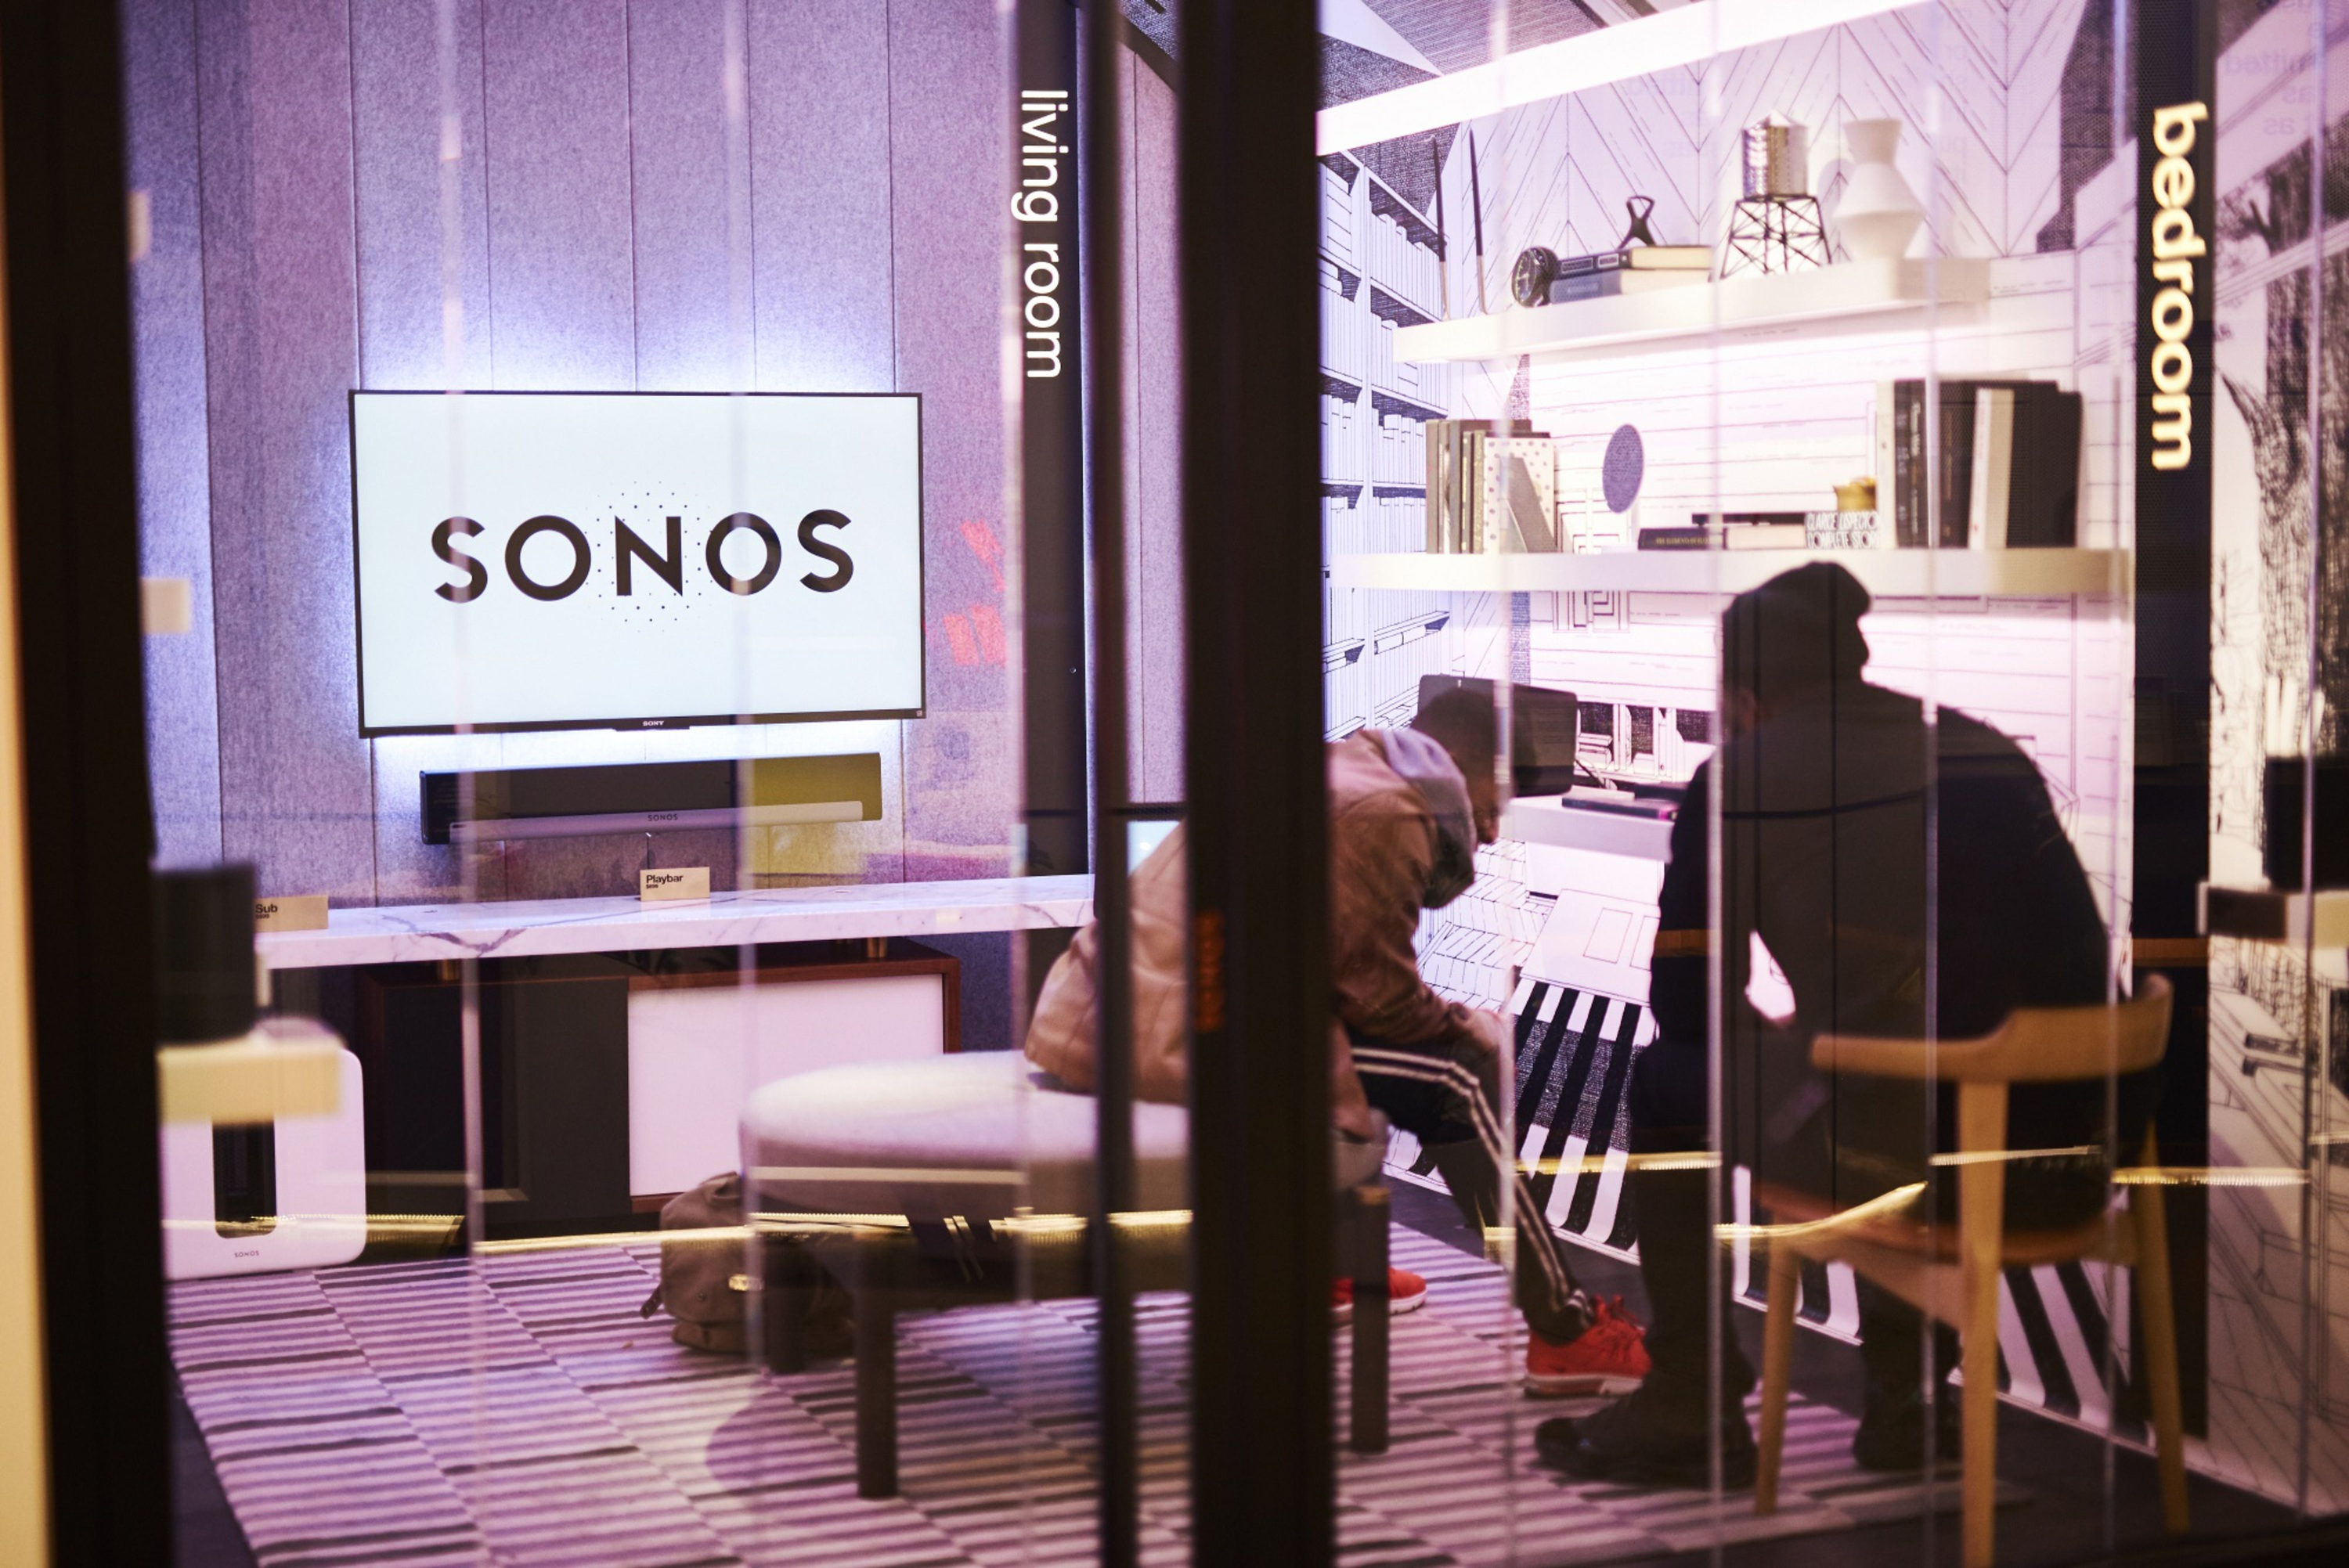 Sonos taps VCCP and Muh-Tay-Zik / Hof-Fer to lead creative and strategy